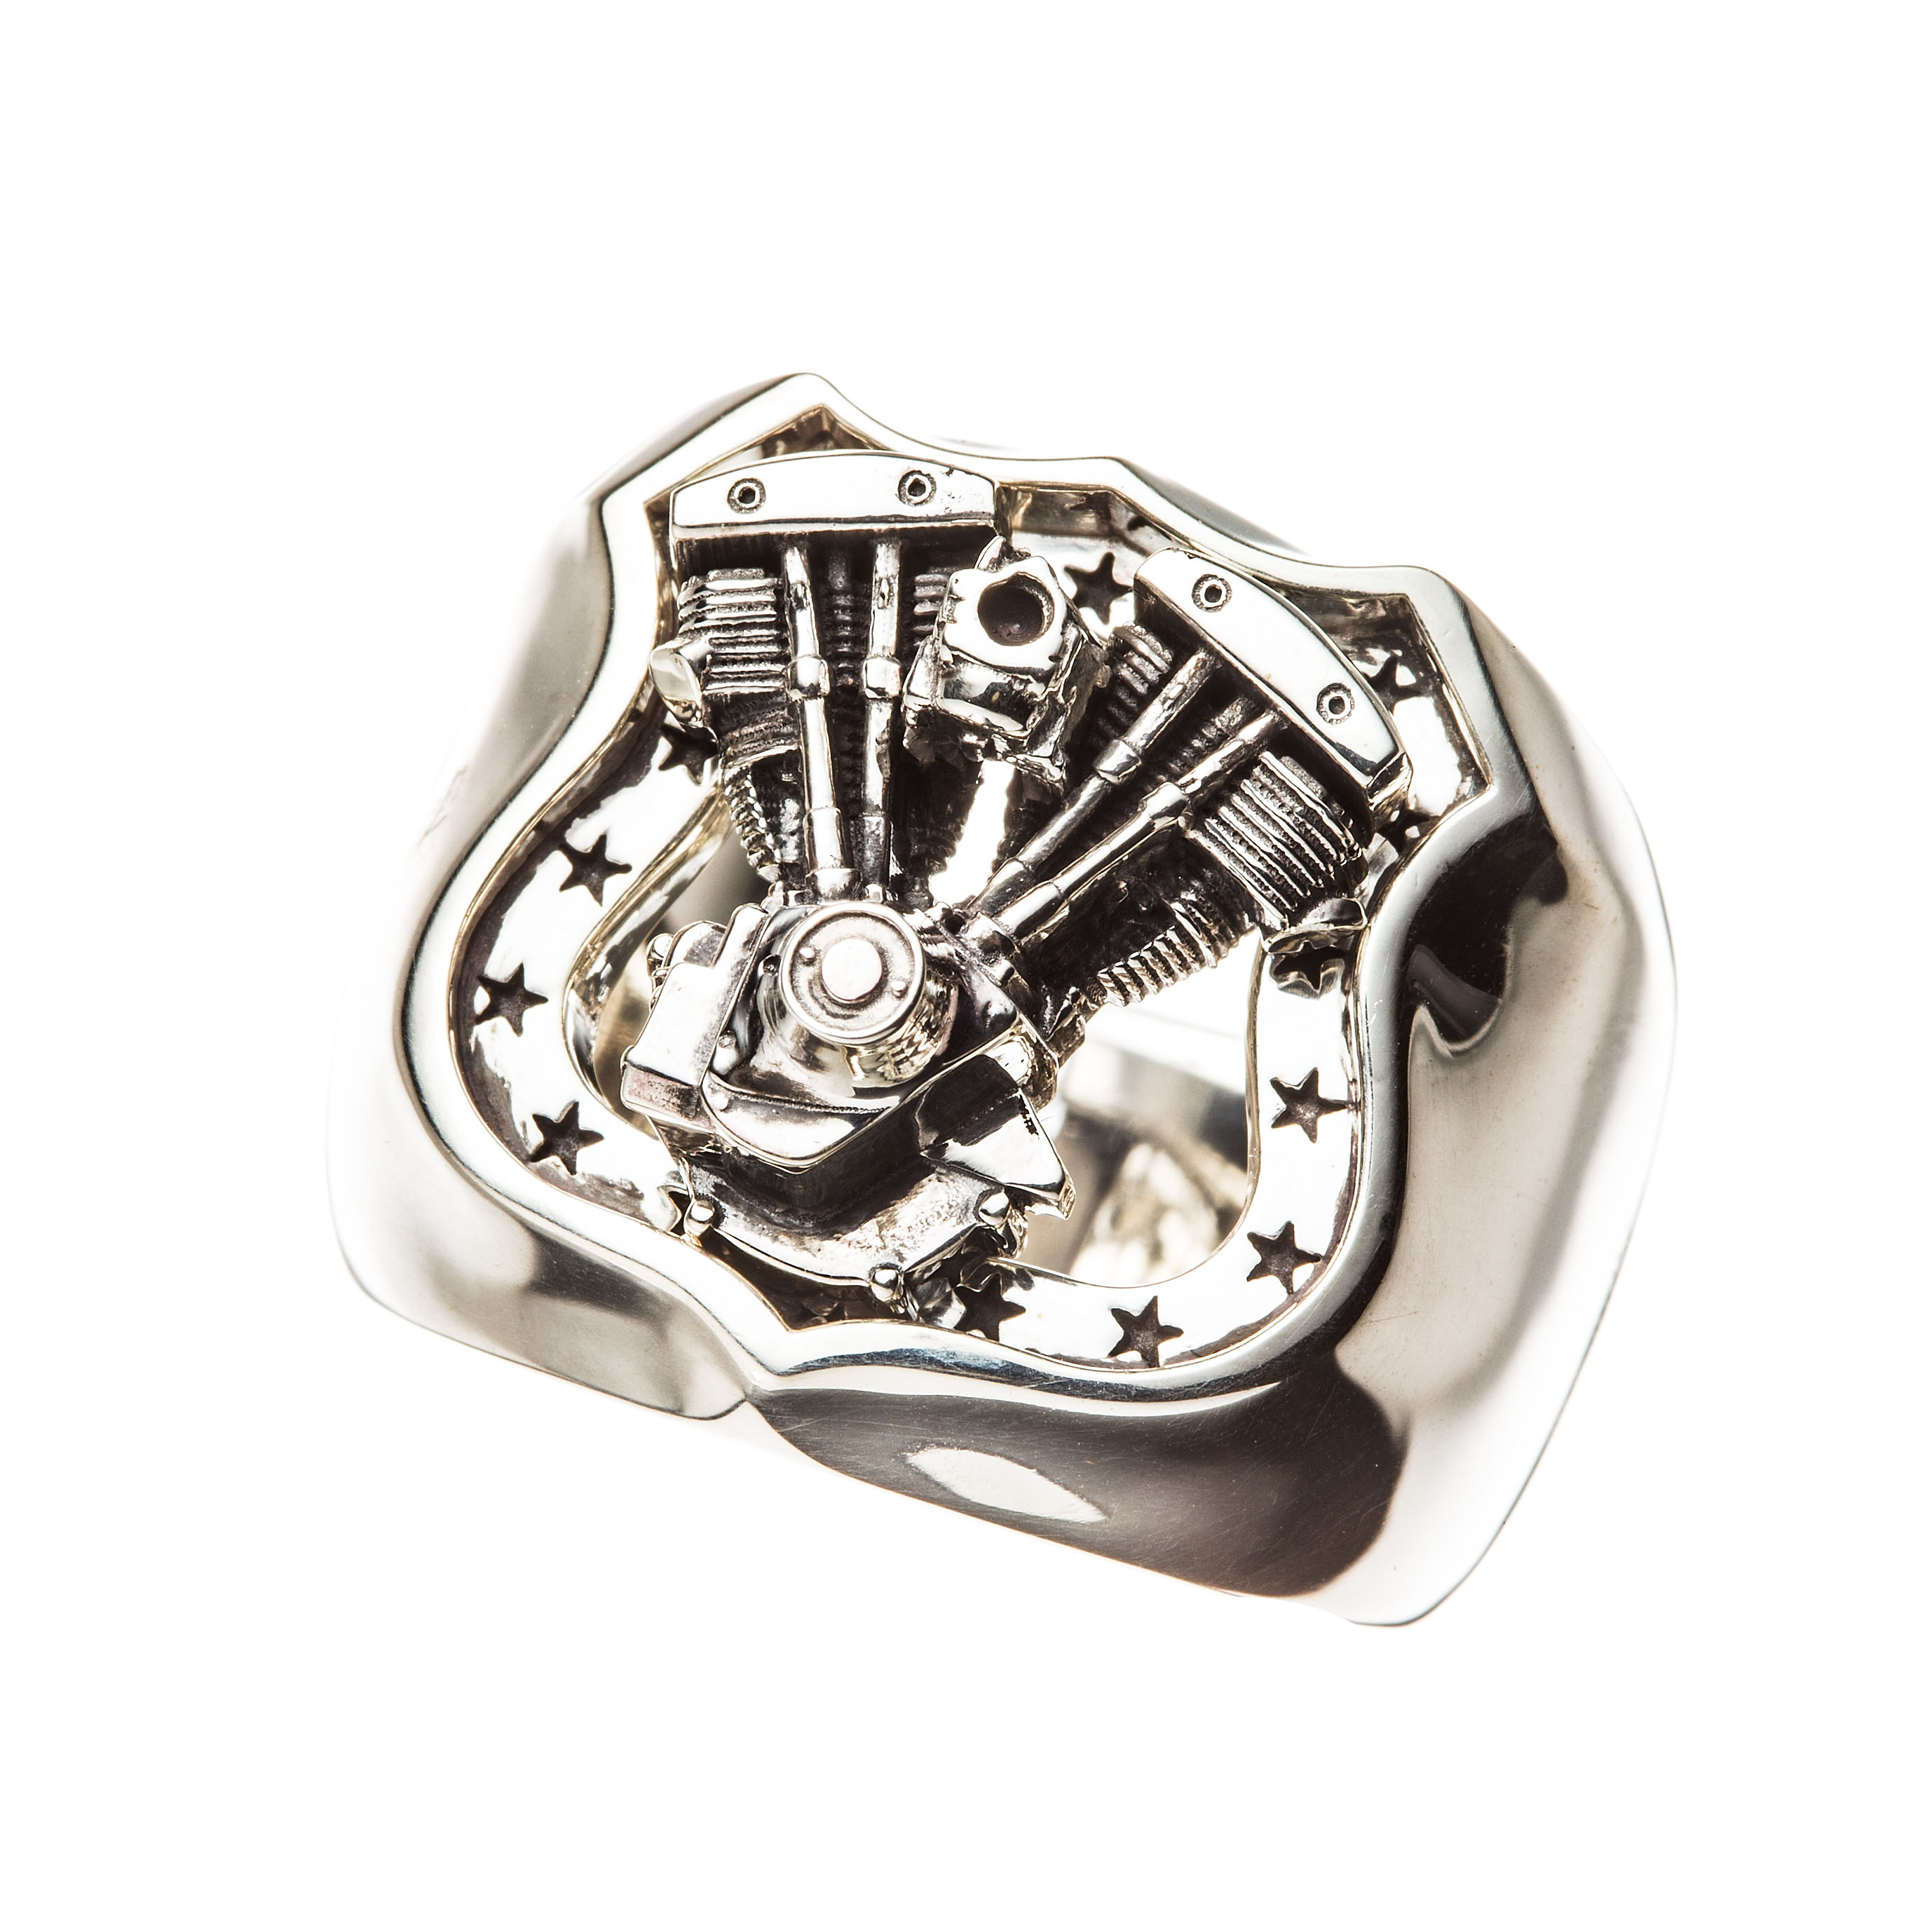 SHOVEL ENGINE RING